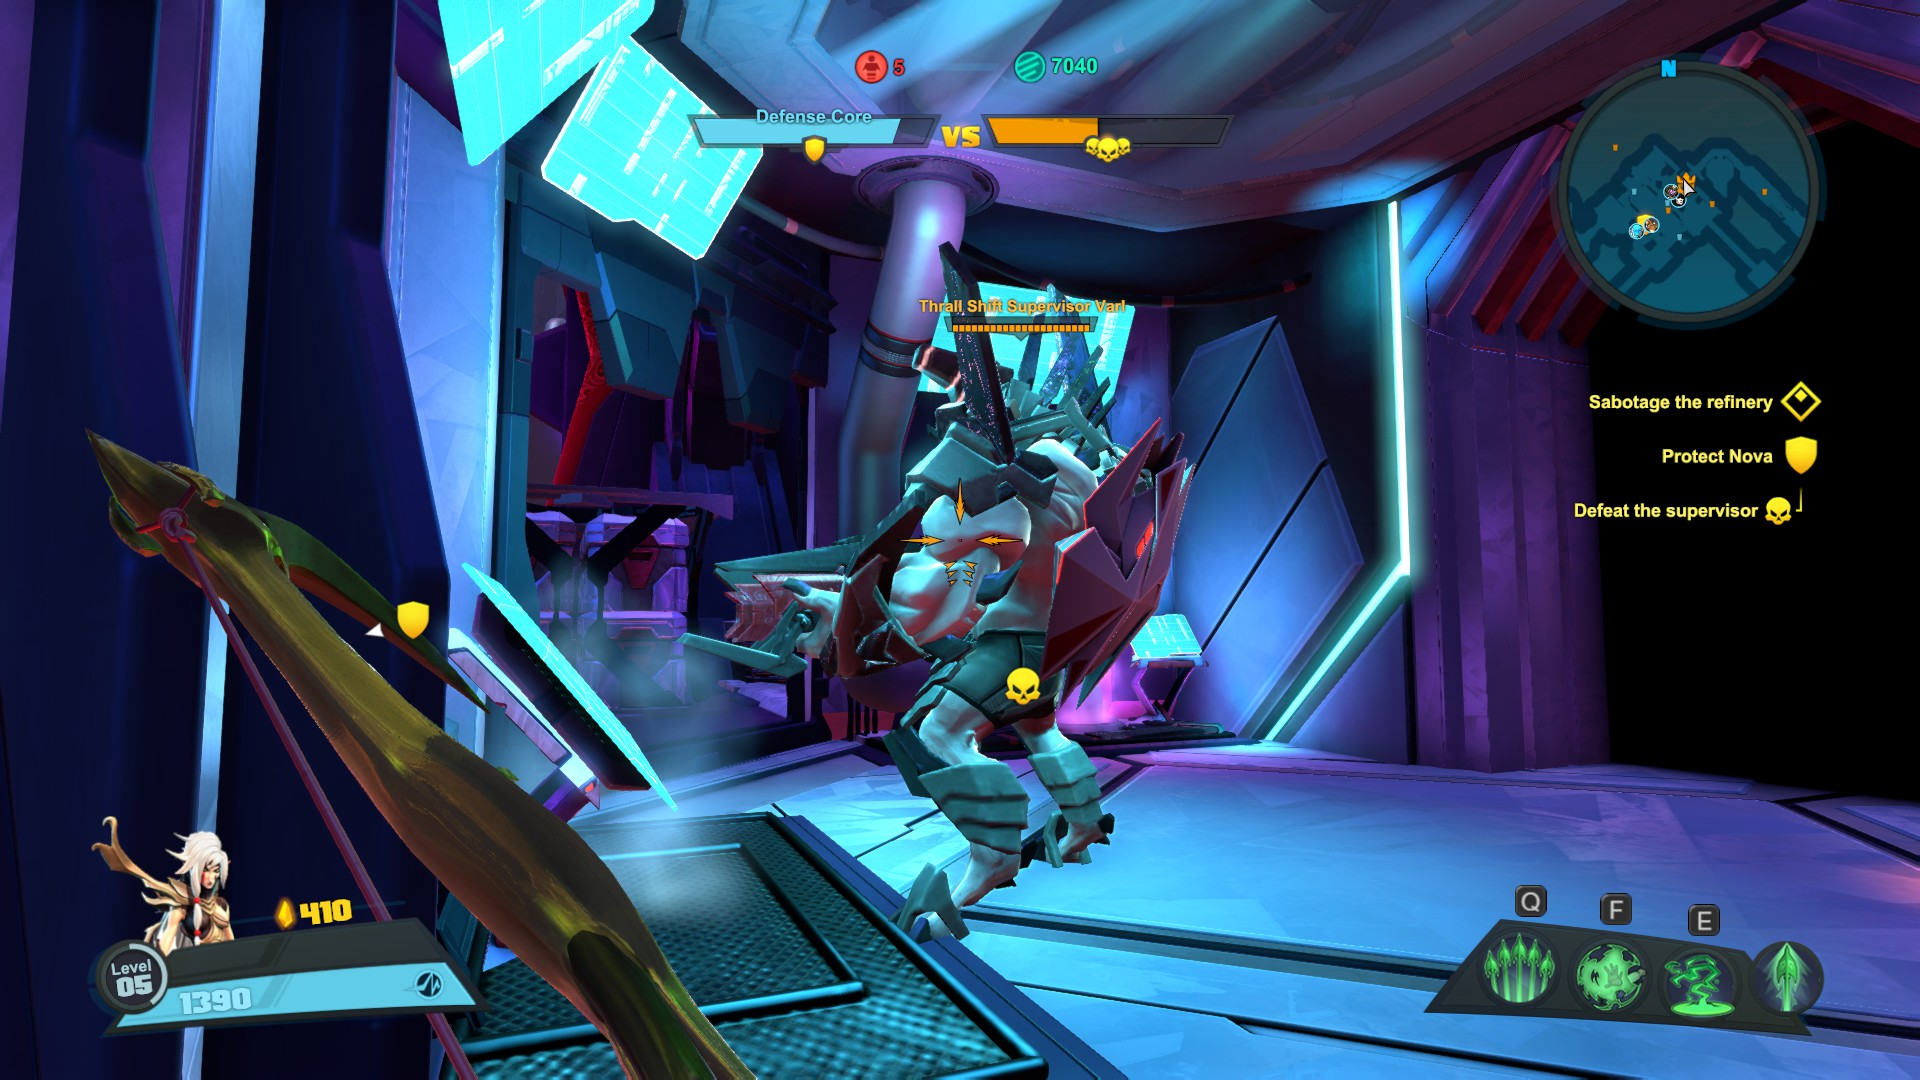 image thrall shift supervisor varl jpg battleborn wiki file thrall shift supervisor varl jpg